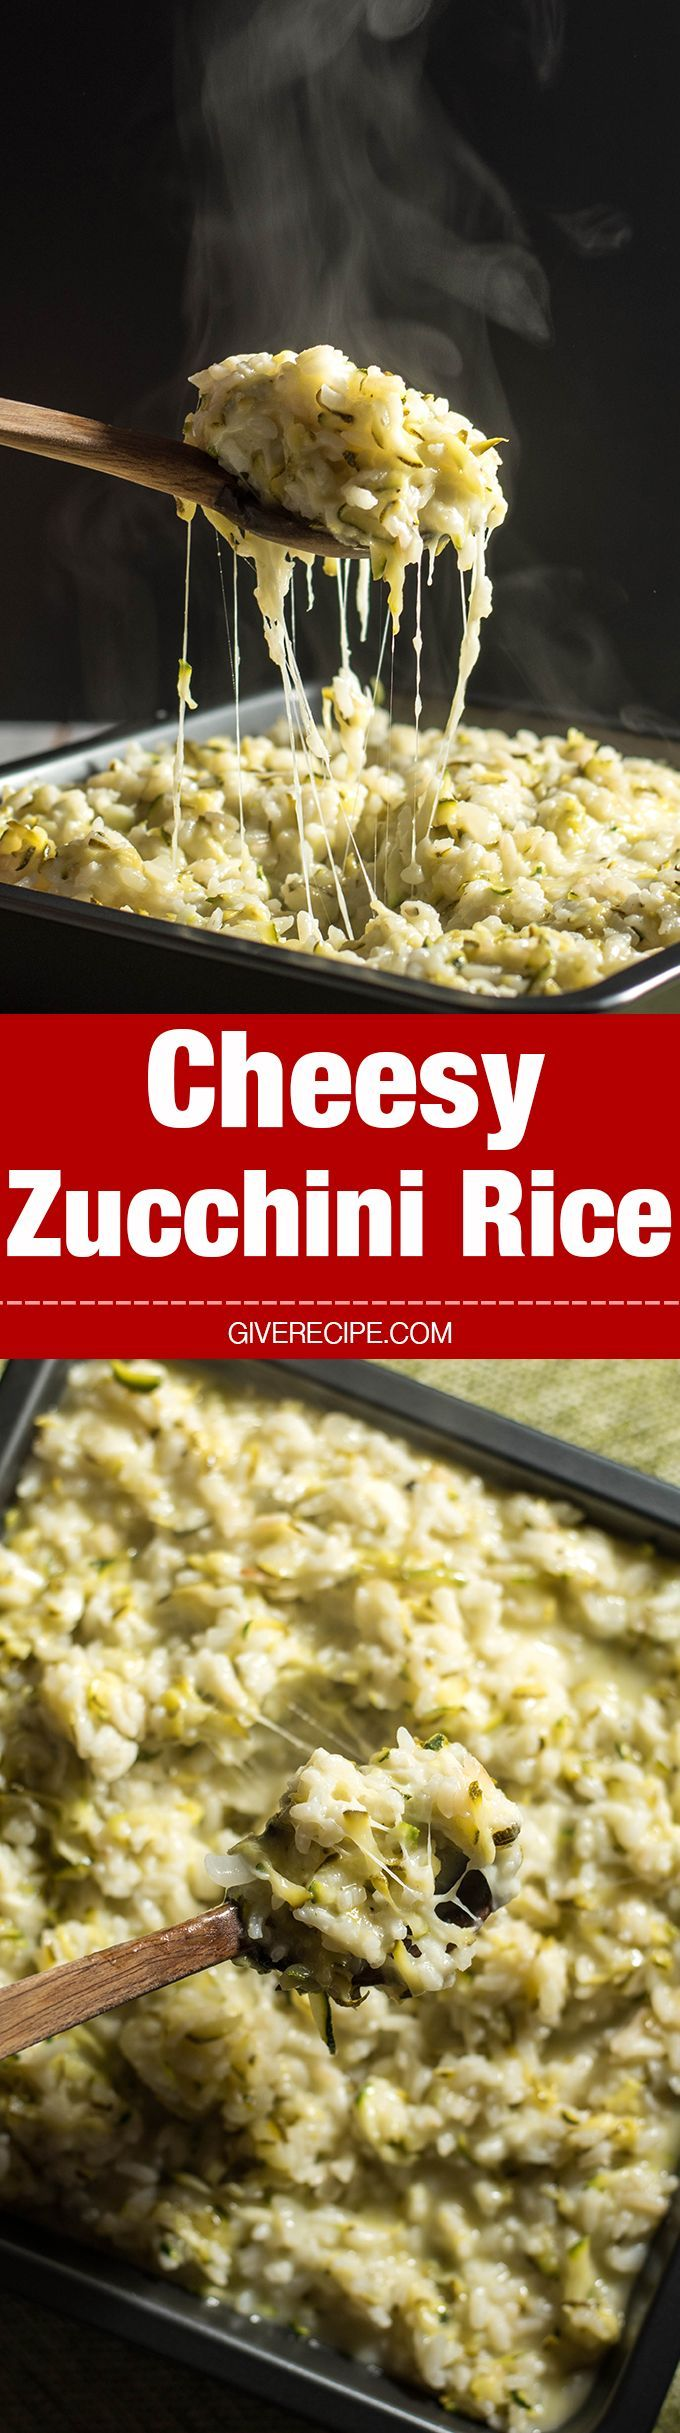 Cheesy Zucchini Rice will be the most favorite side of your family in summer. Despite all the zucchini inside! 100% guaranteed!